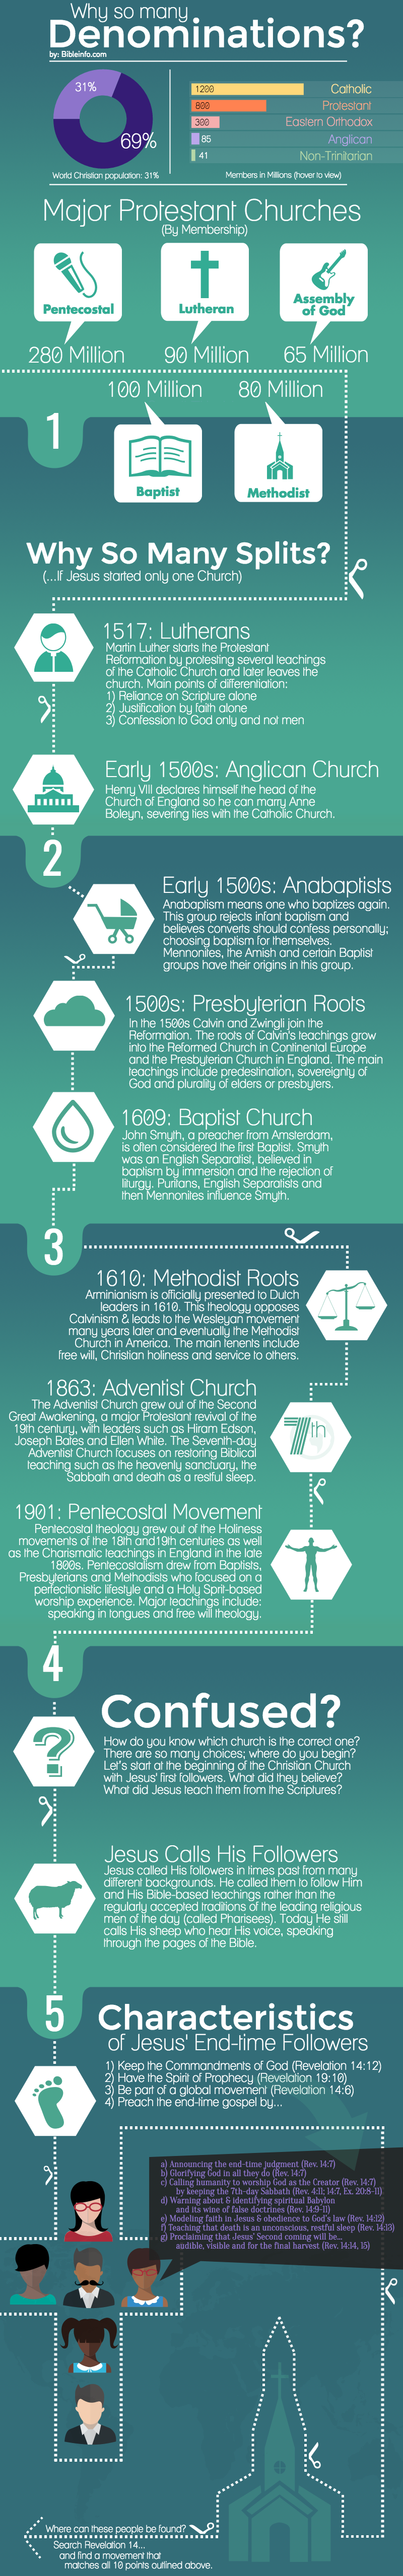 Infographic: why so many denominations?